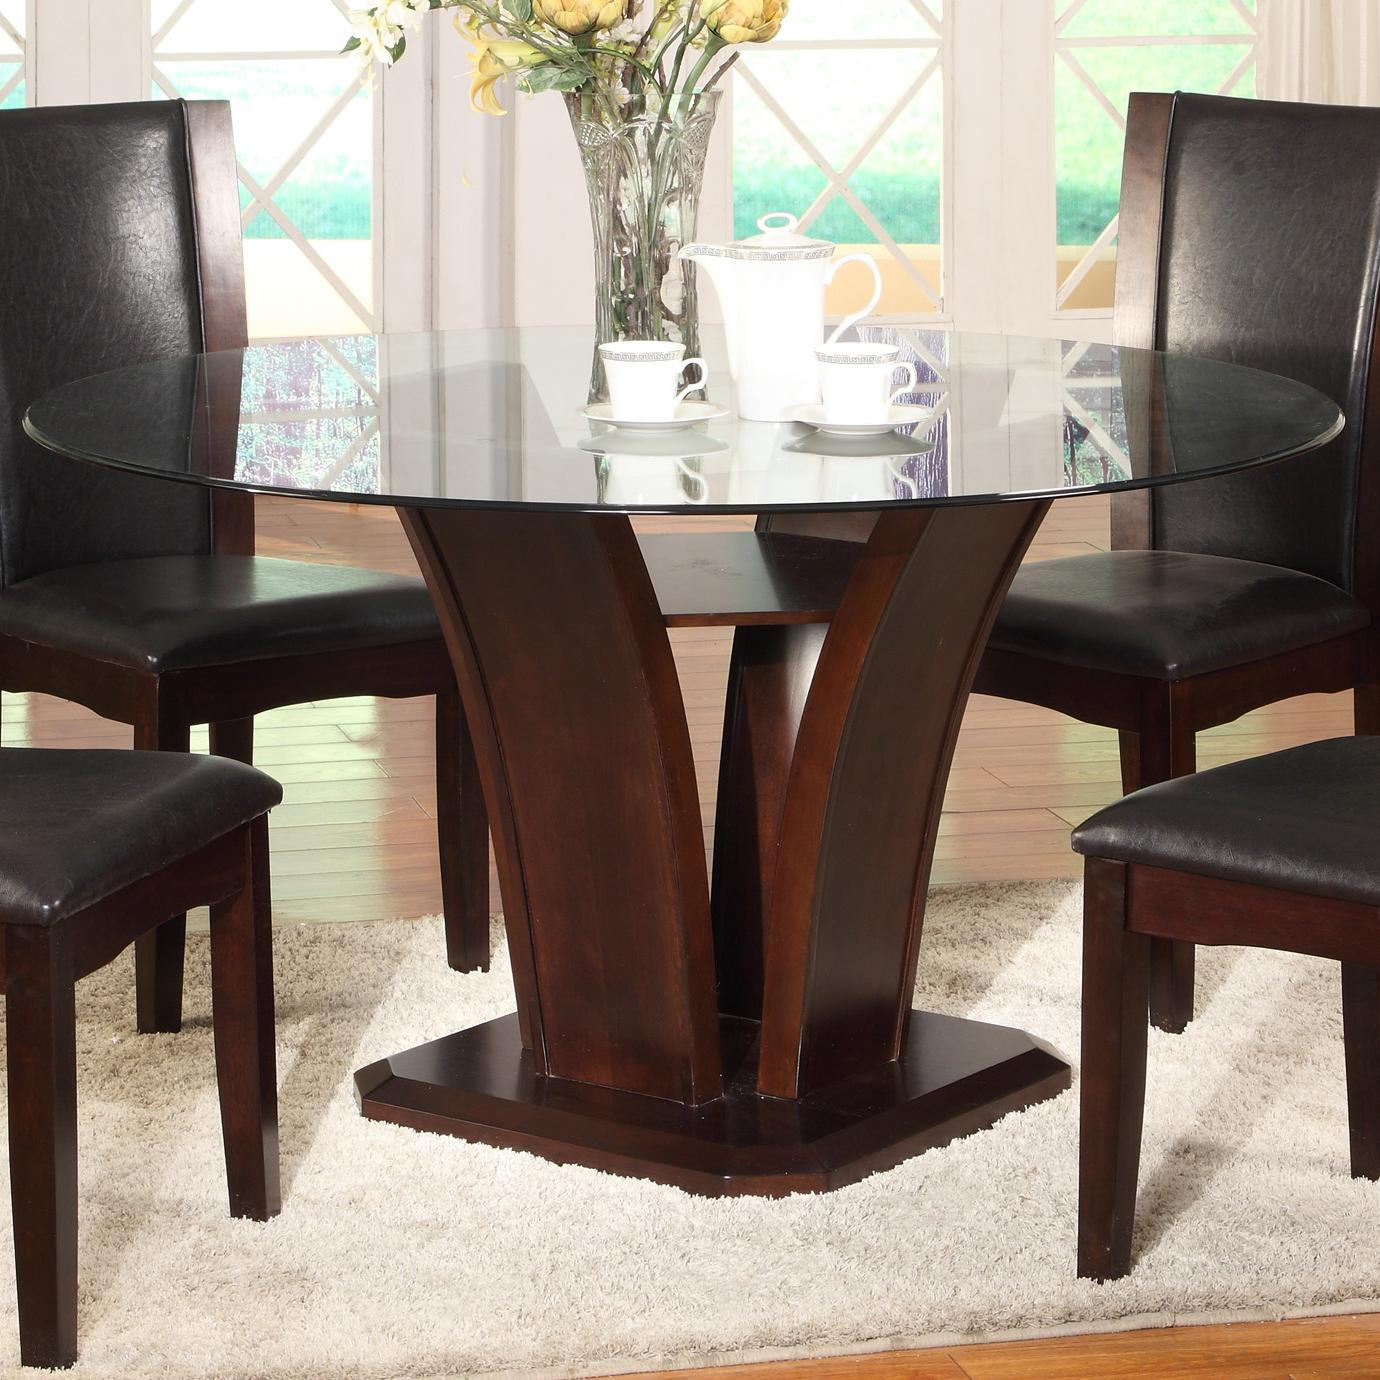 espresso table and chairs vision fishing chair crown mark camelia round glass top dining